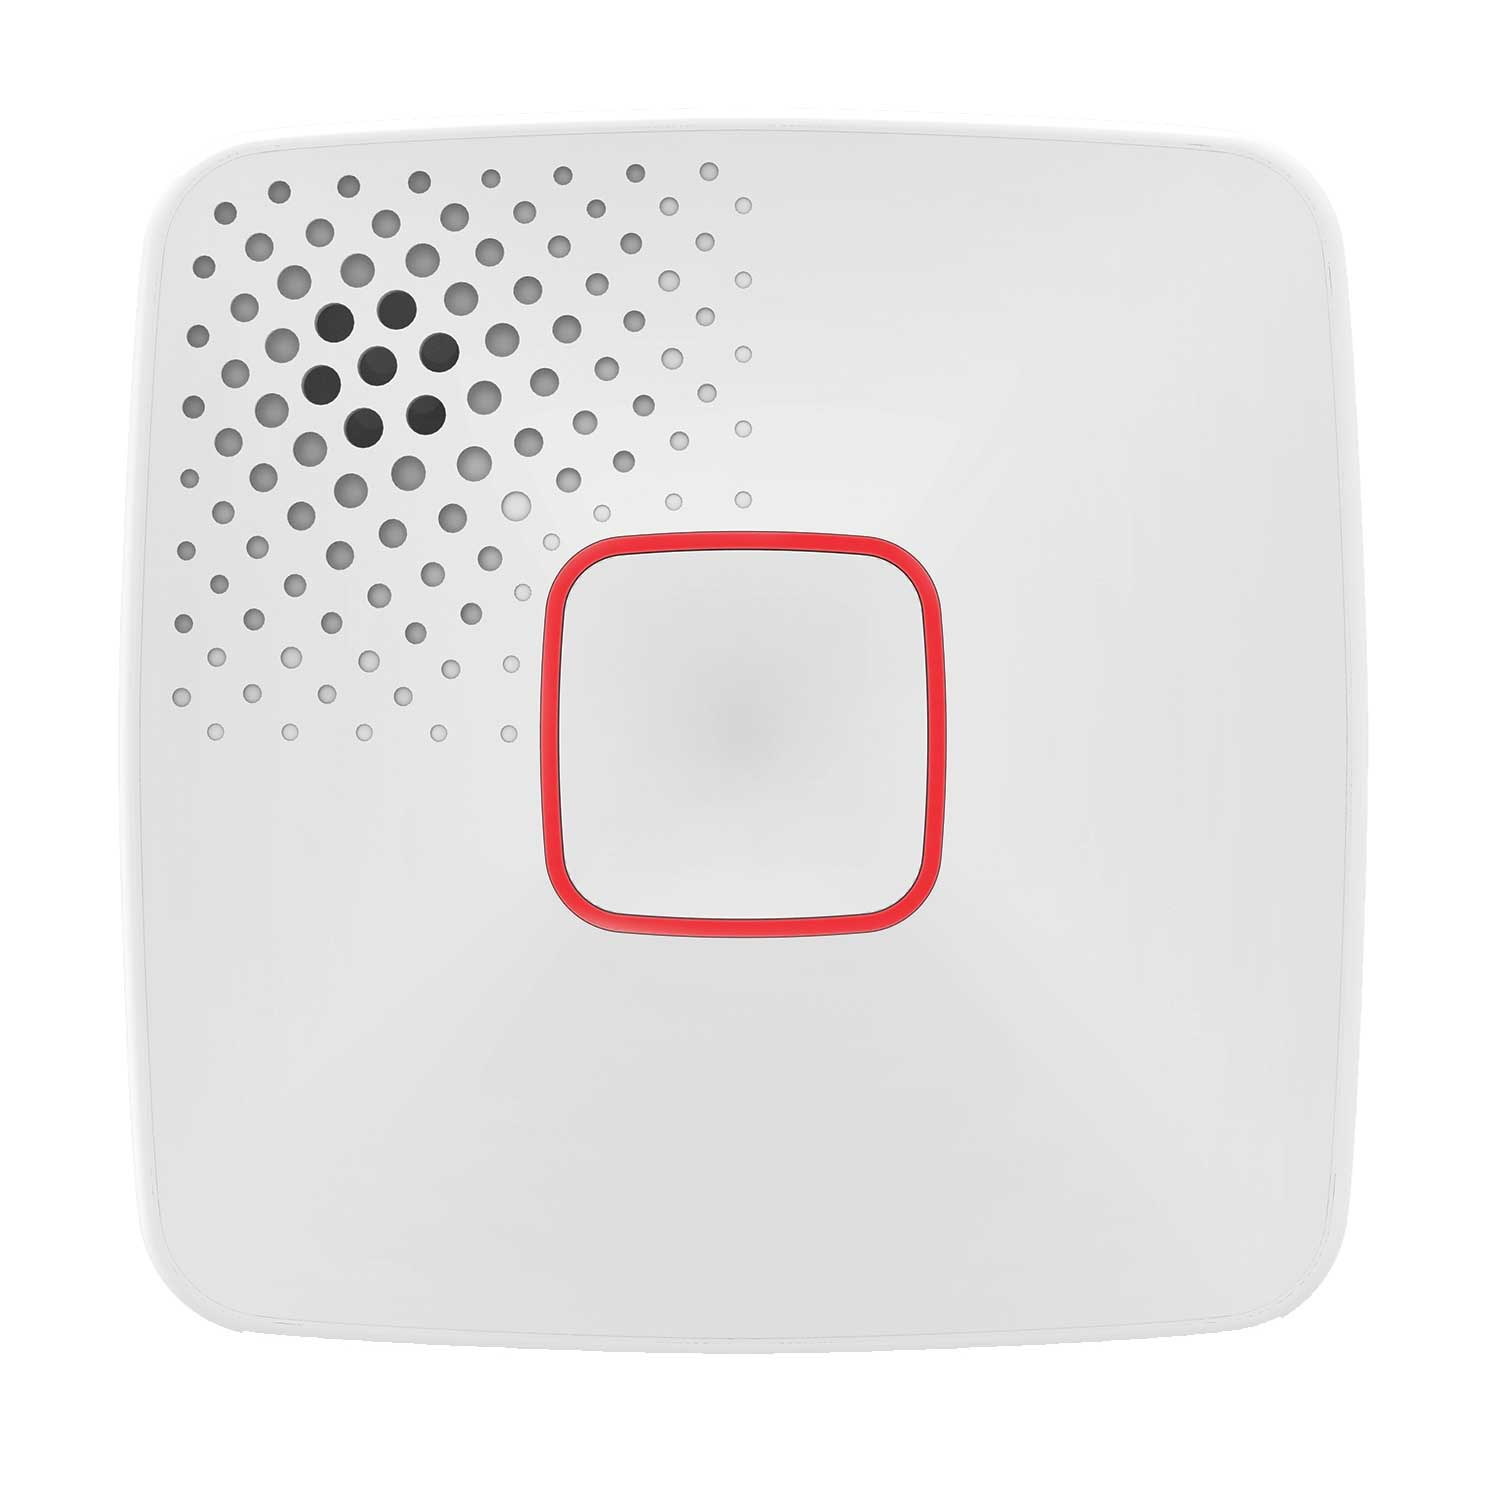 First Alert Onelink Ac10 500 Hardwired Wi Fi Smoke